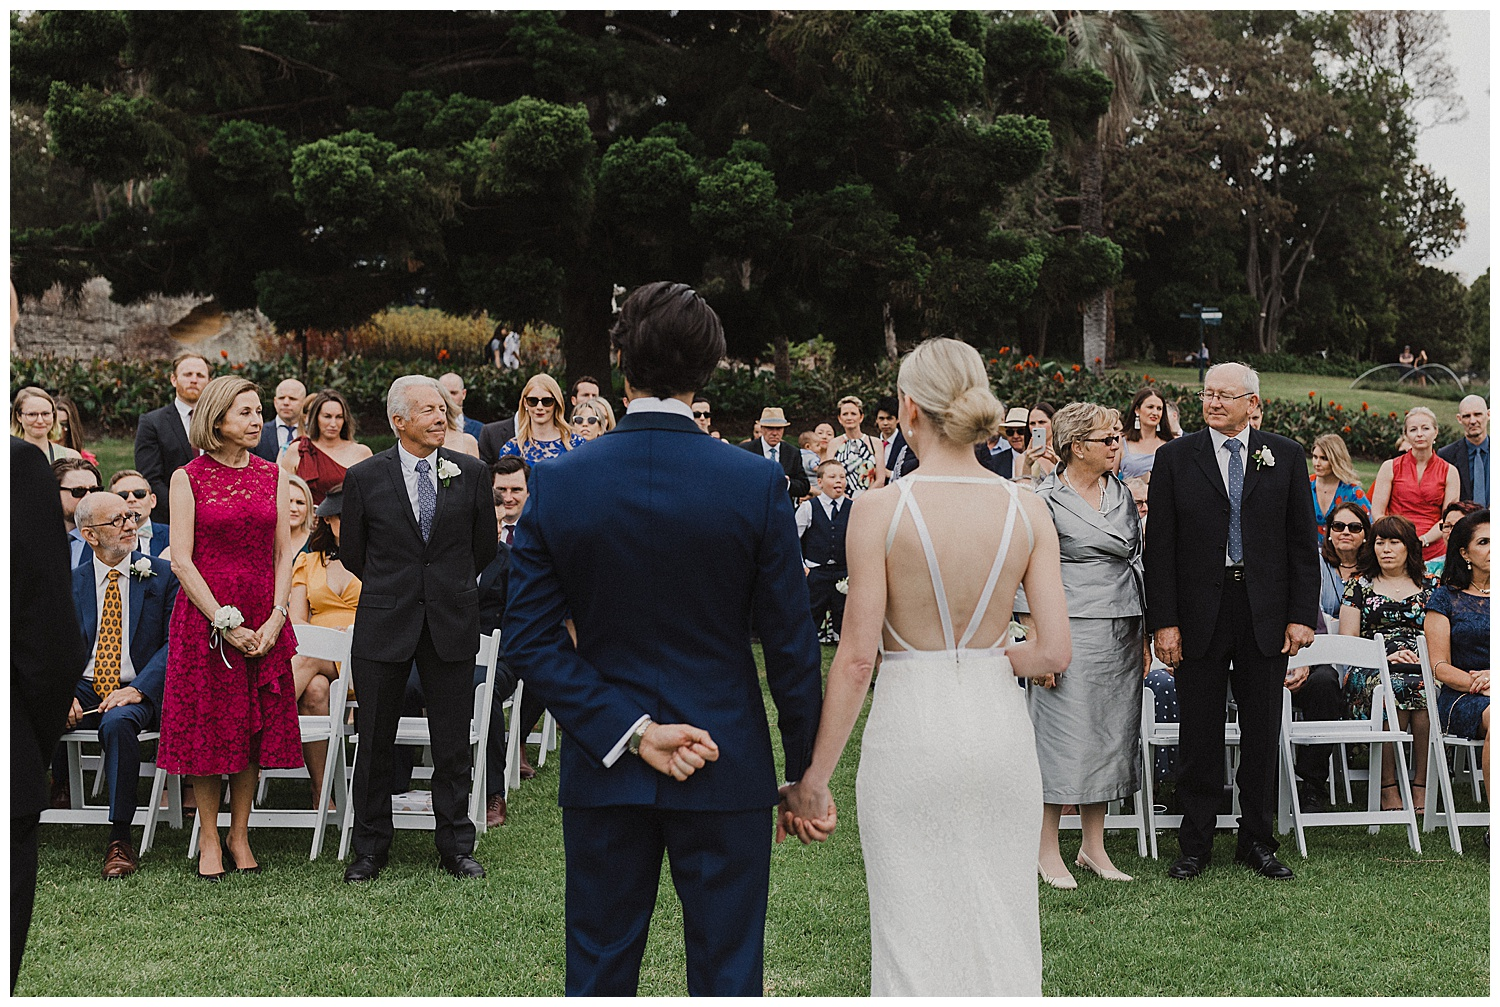 Bride and groom are given away by parents at this Sydney Wedding Ceremony